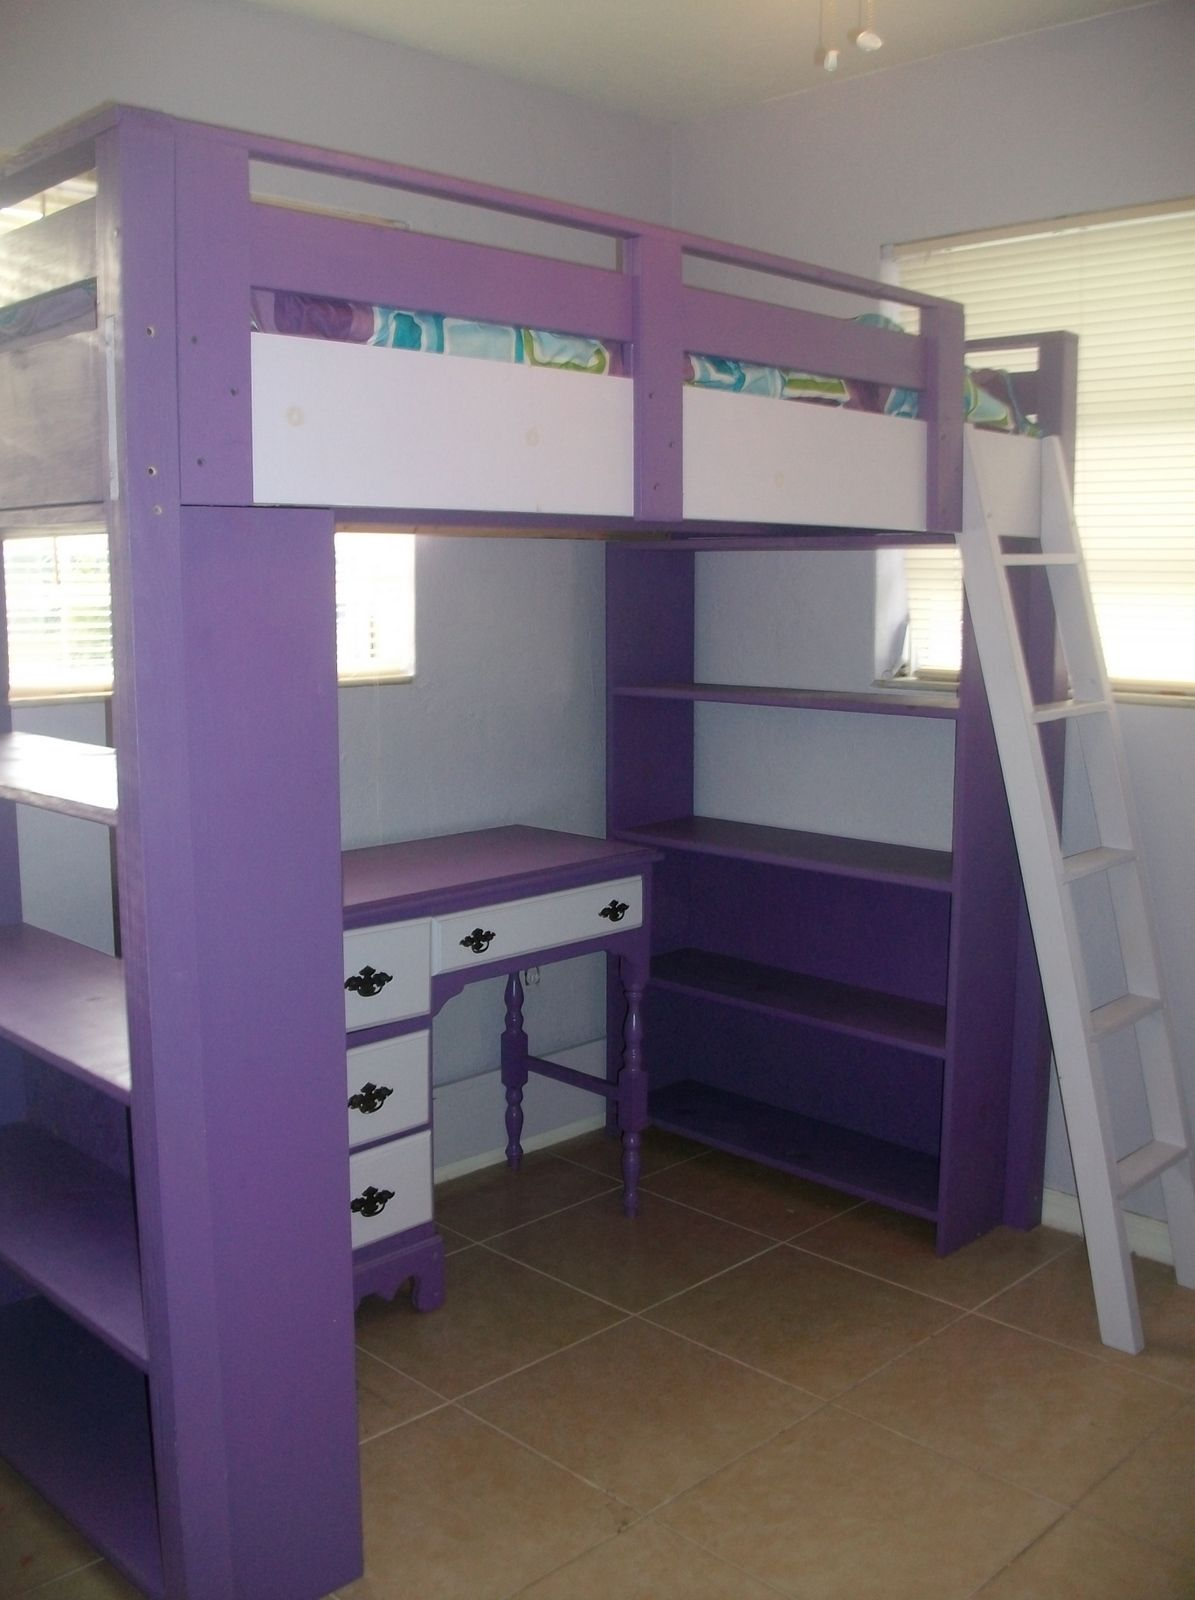 Diy loft bed plans with a desk under purple loft bed Loft bed plans